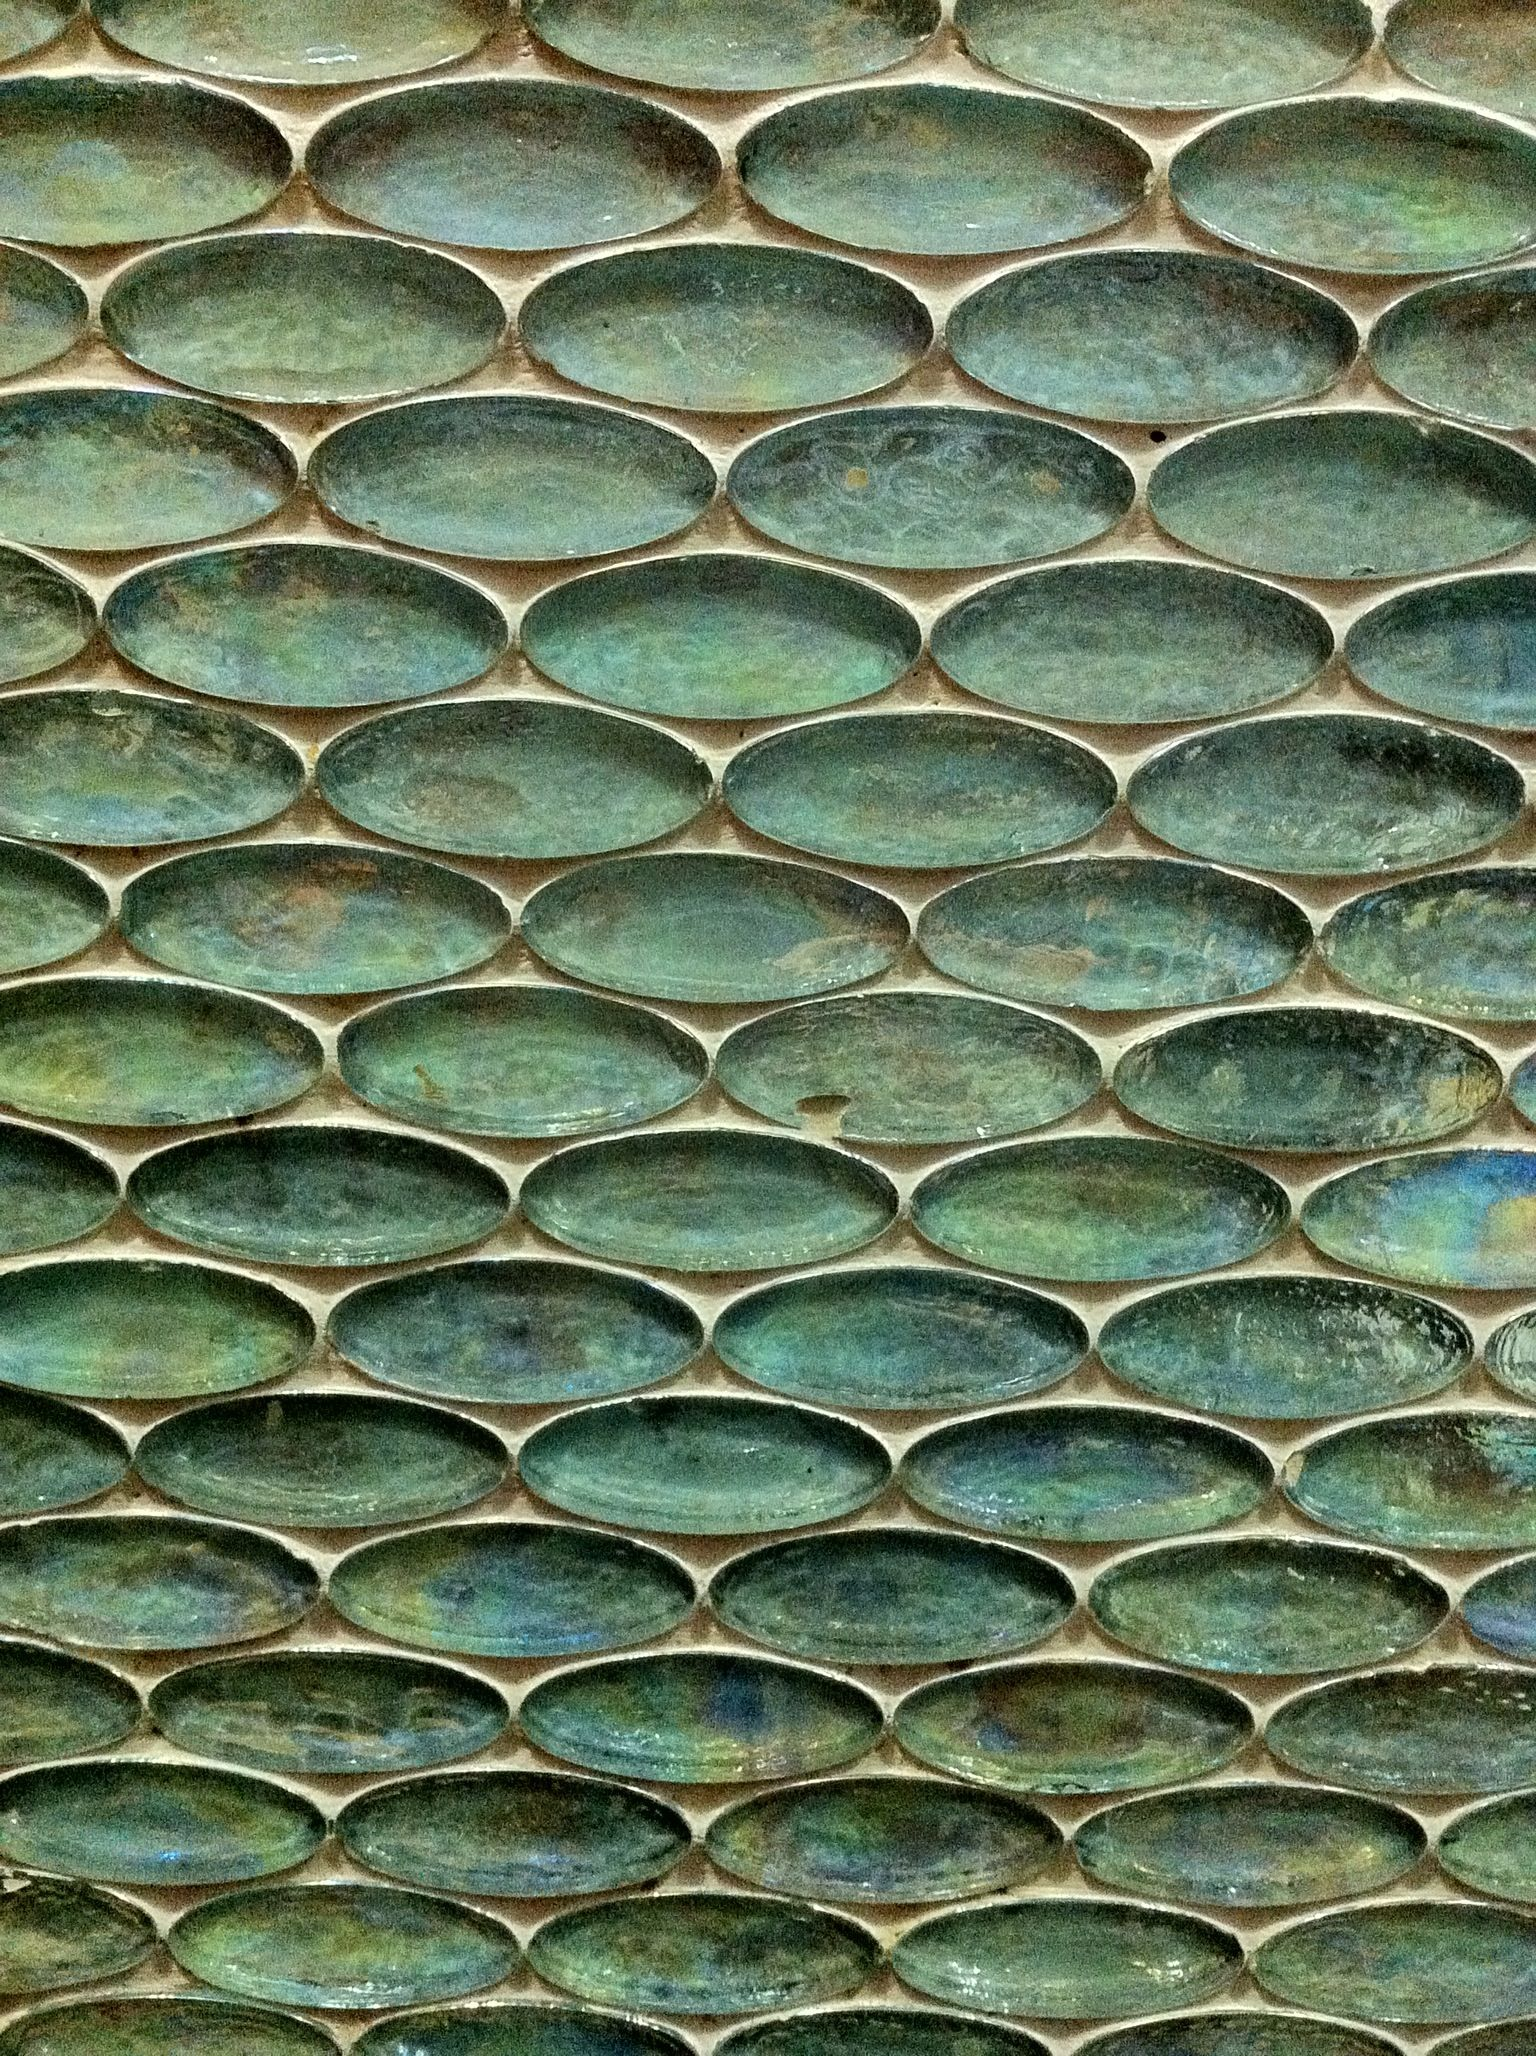 Elliptical Tiles The Colour Of Patinated Copper By I Wish